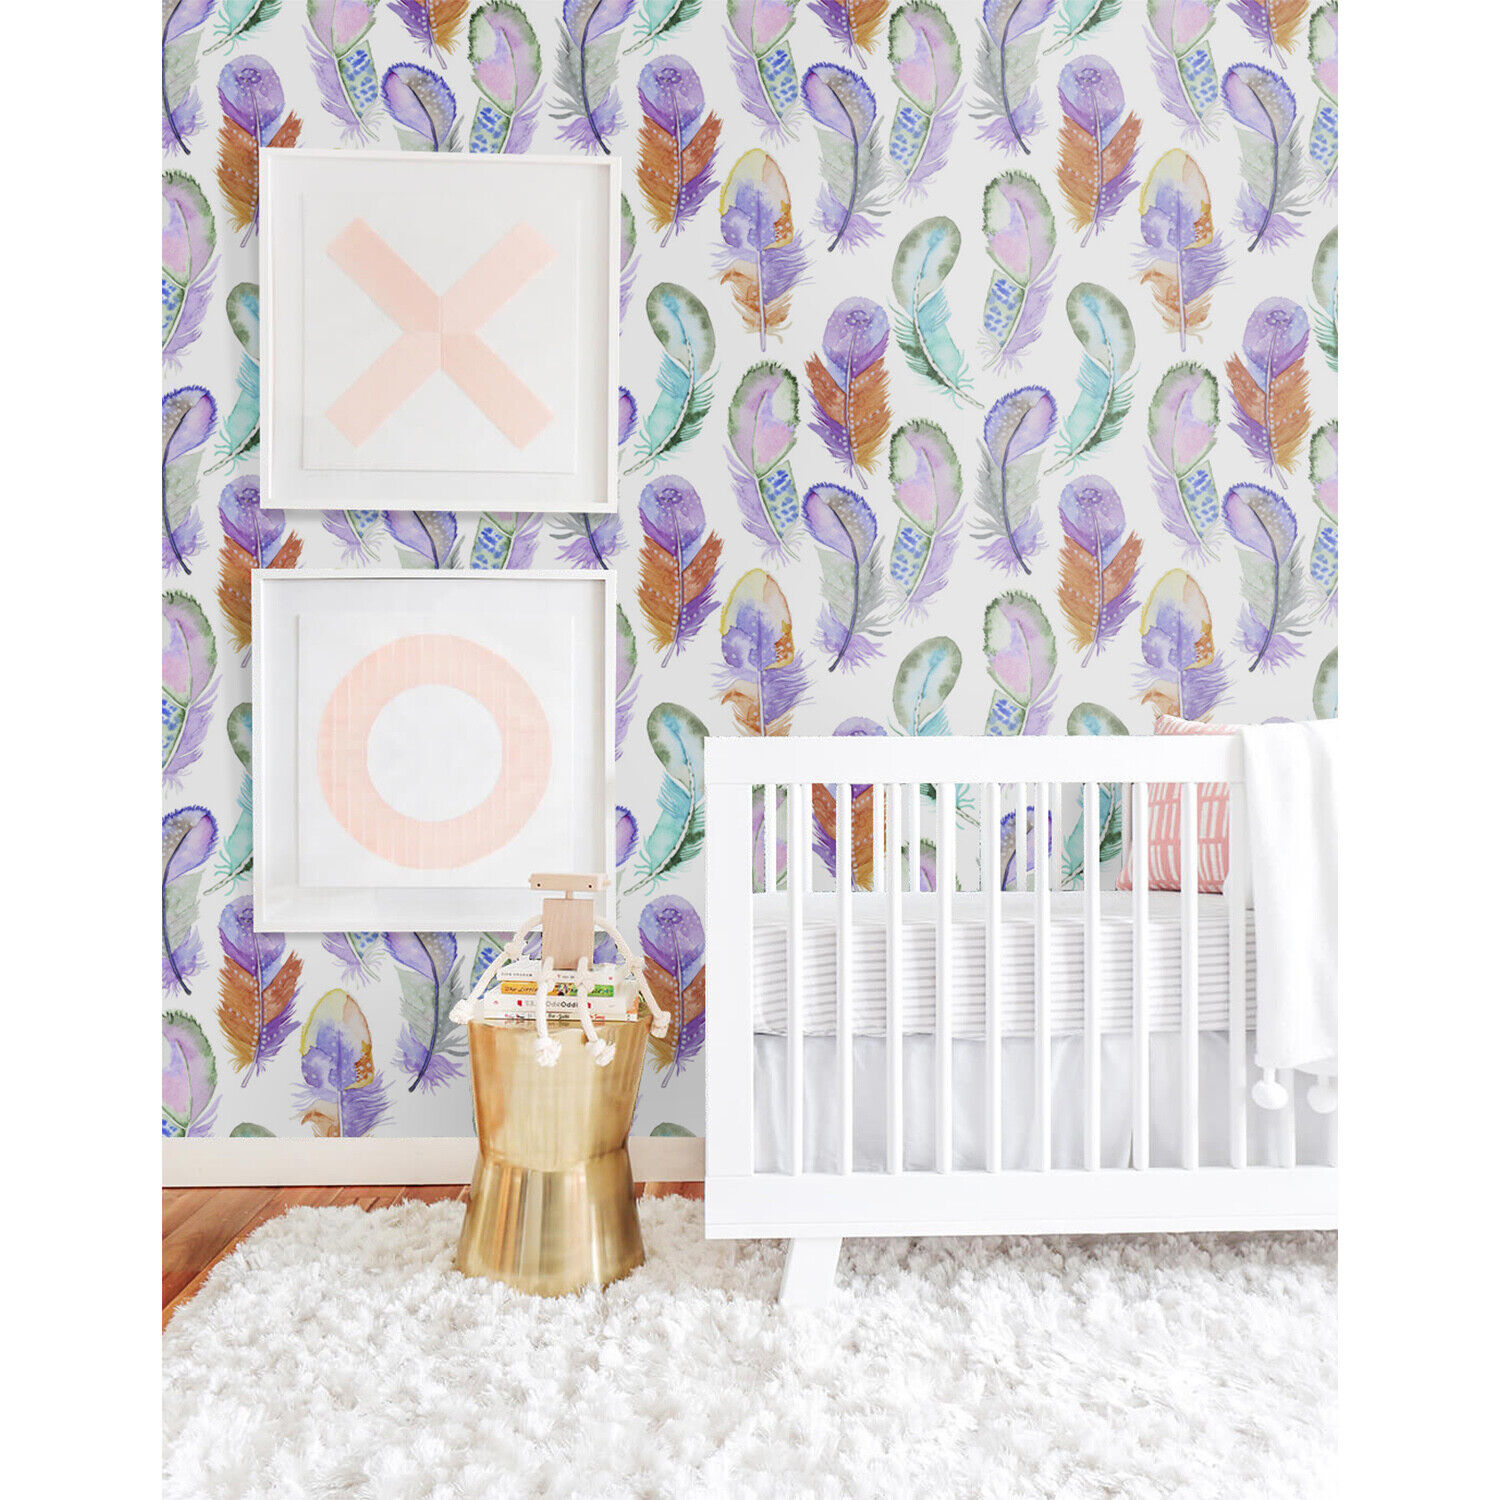 Removable Wall Mural self-adhesive Feather Farbeful Fairy tale Nursery Baby Kids